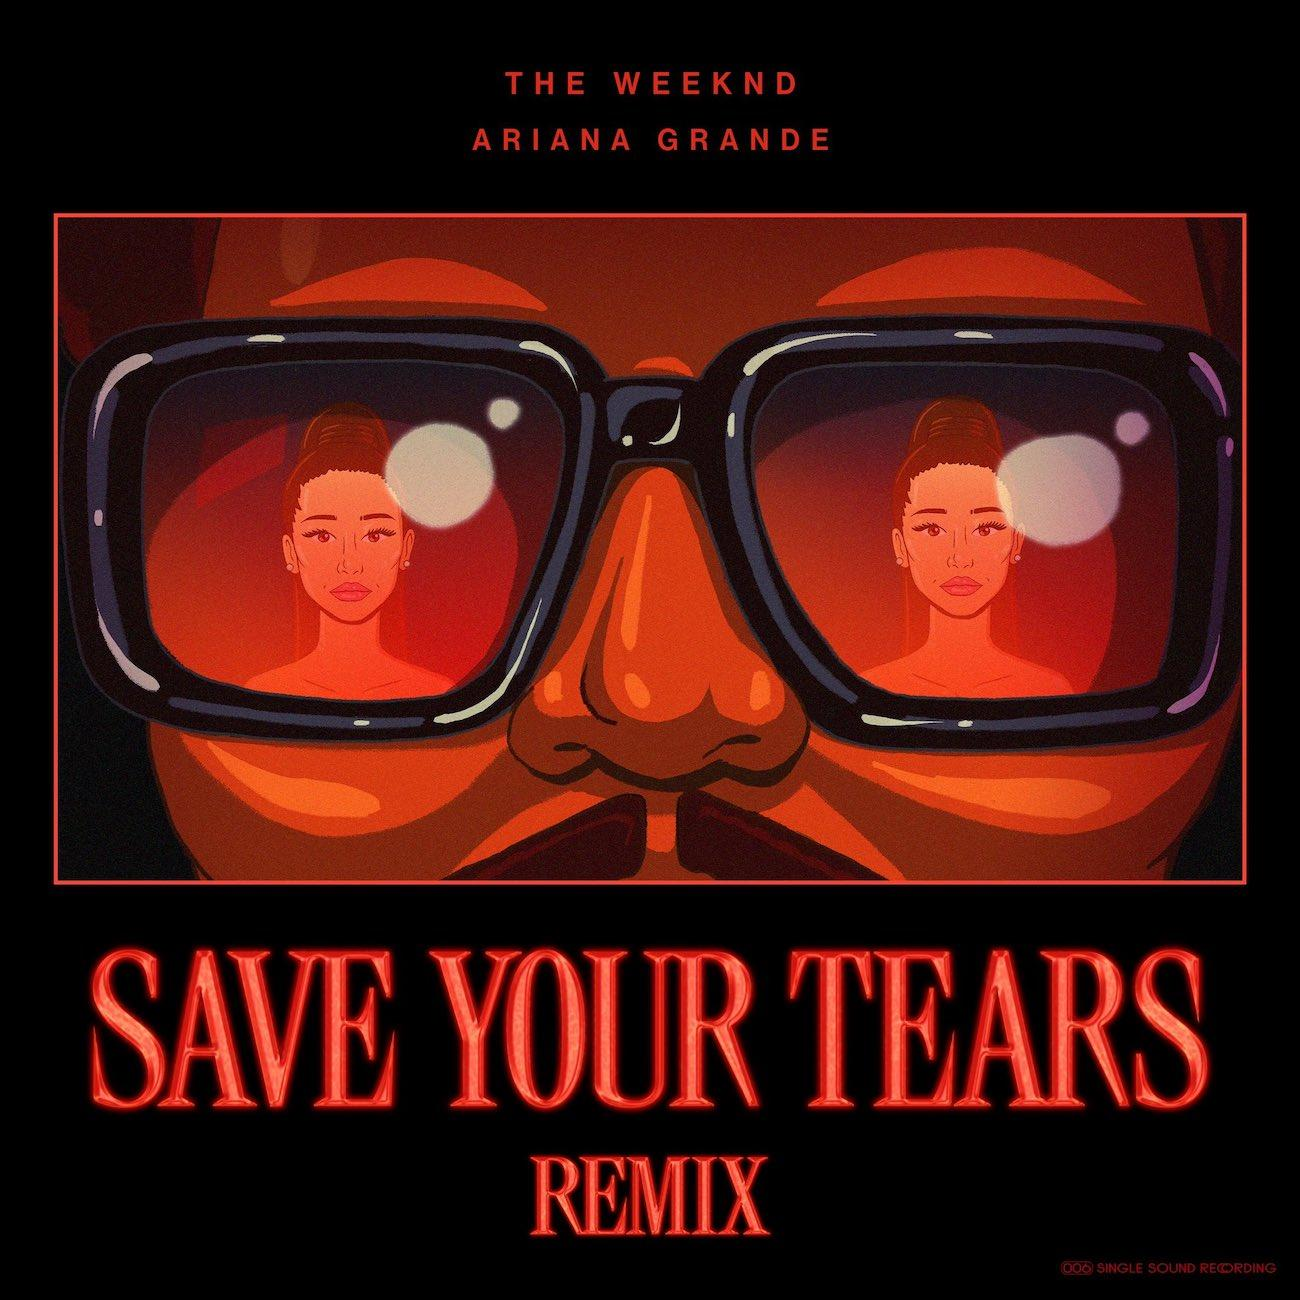 The Weeknd Ft. Ariana Grande - Save Your Tears